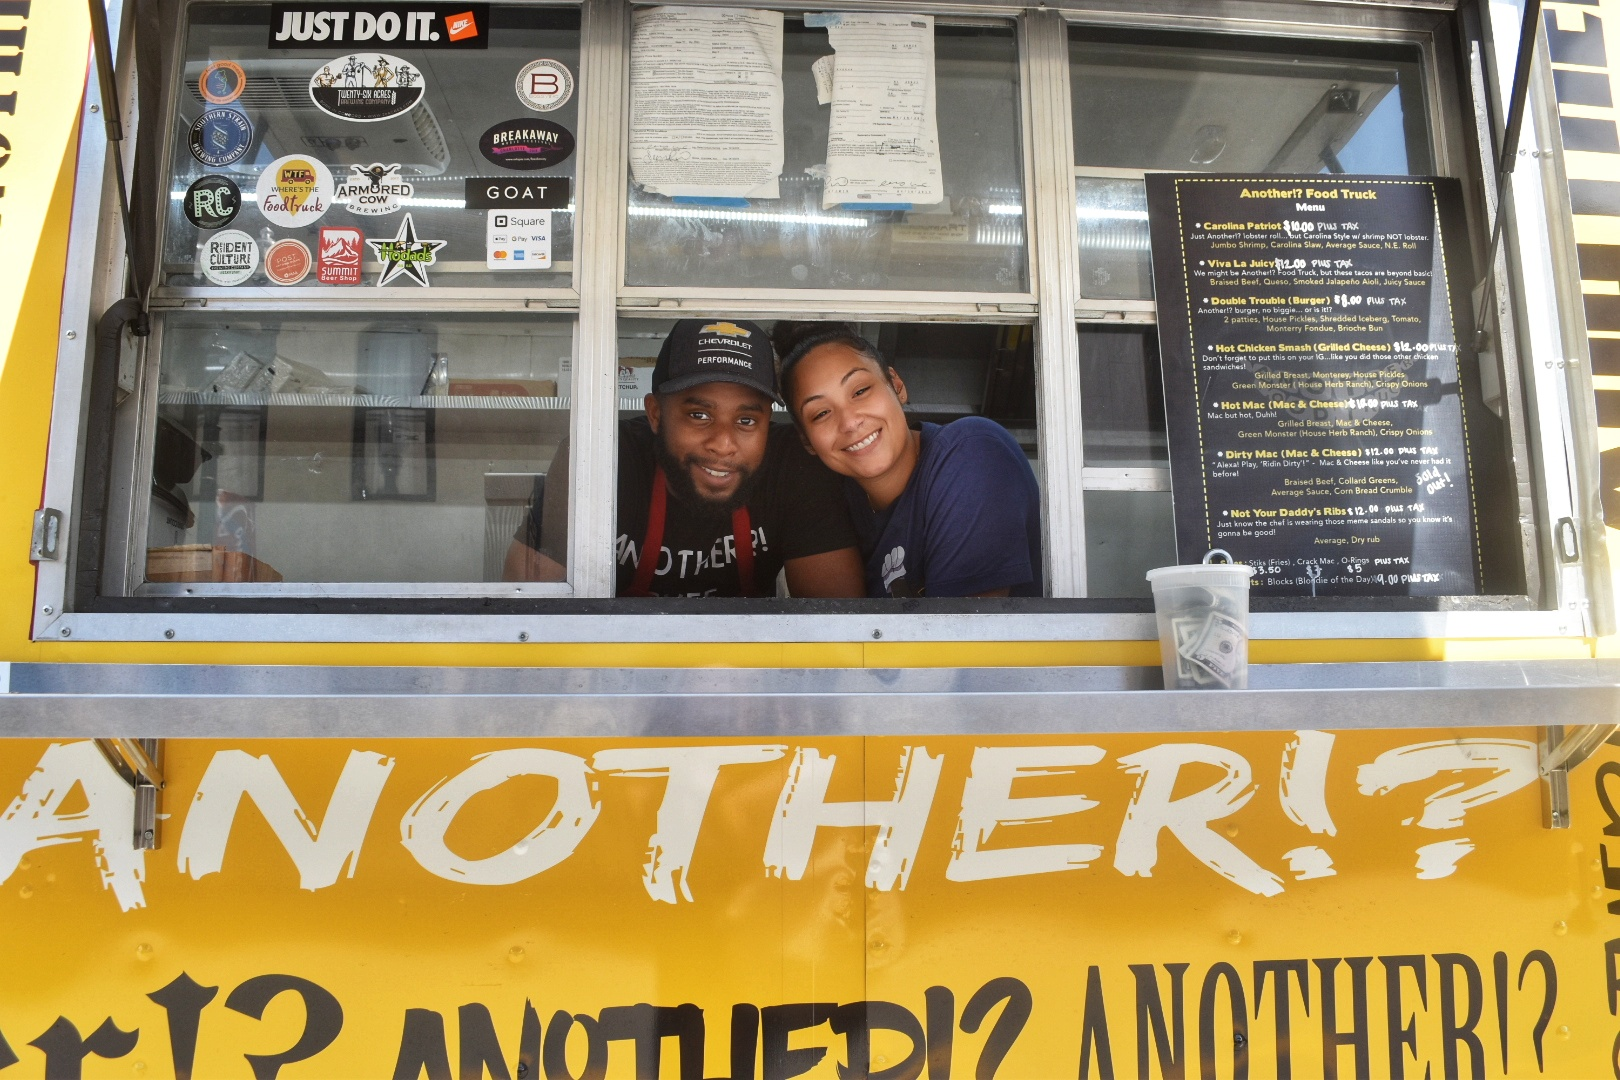 Another-Food-Truck-Anthony-Denning-Kristen-Bandoo